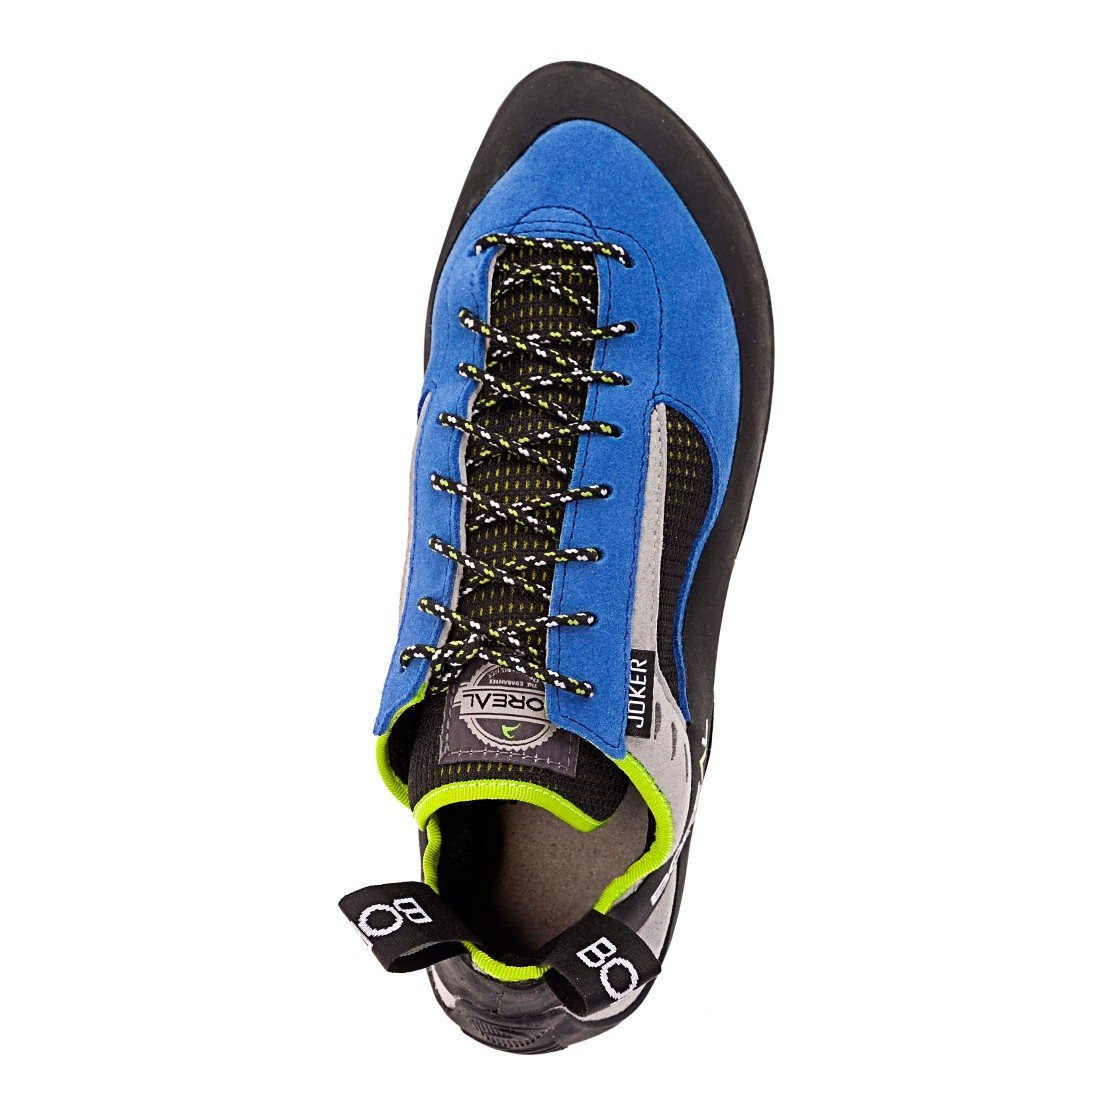 Boreal Joker Lace climbing shoe, view from above